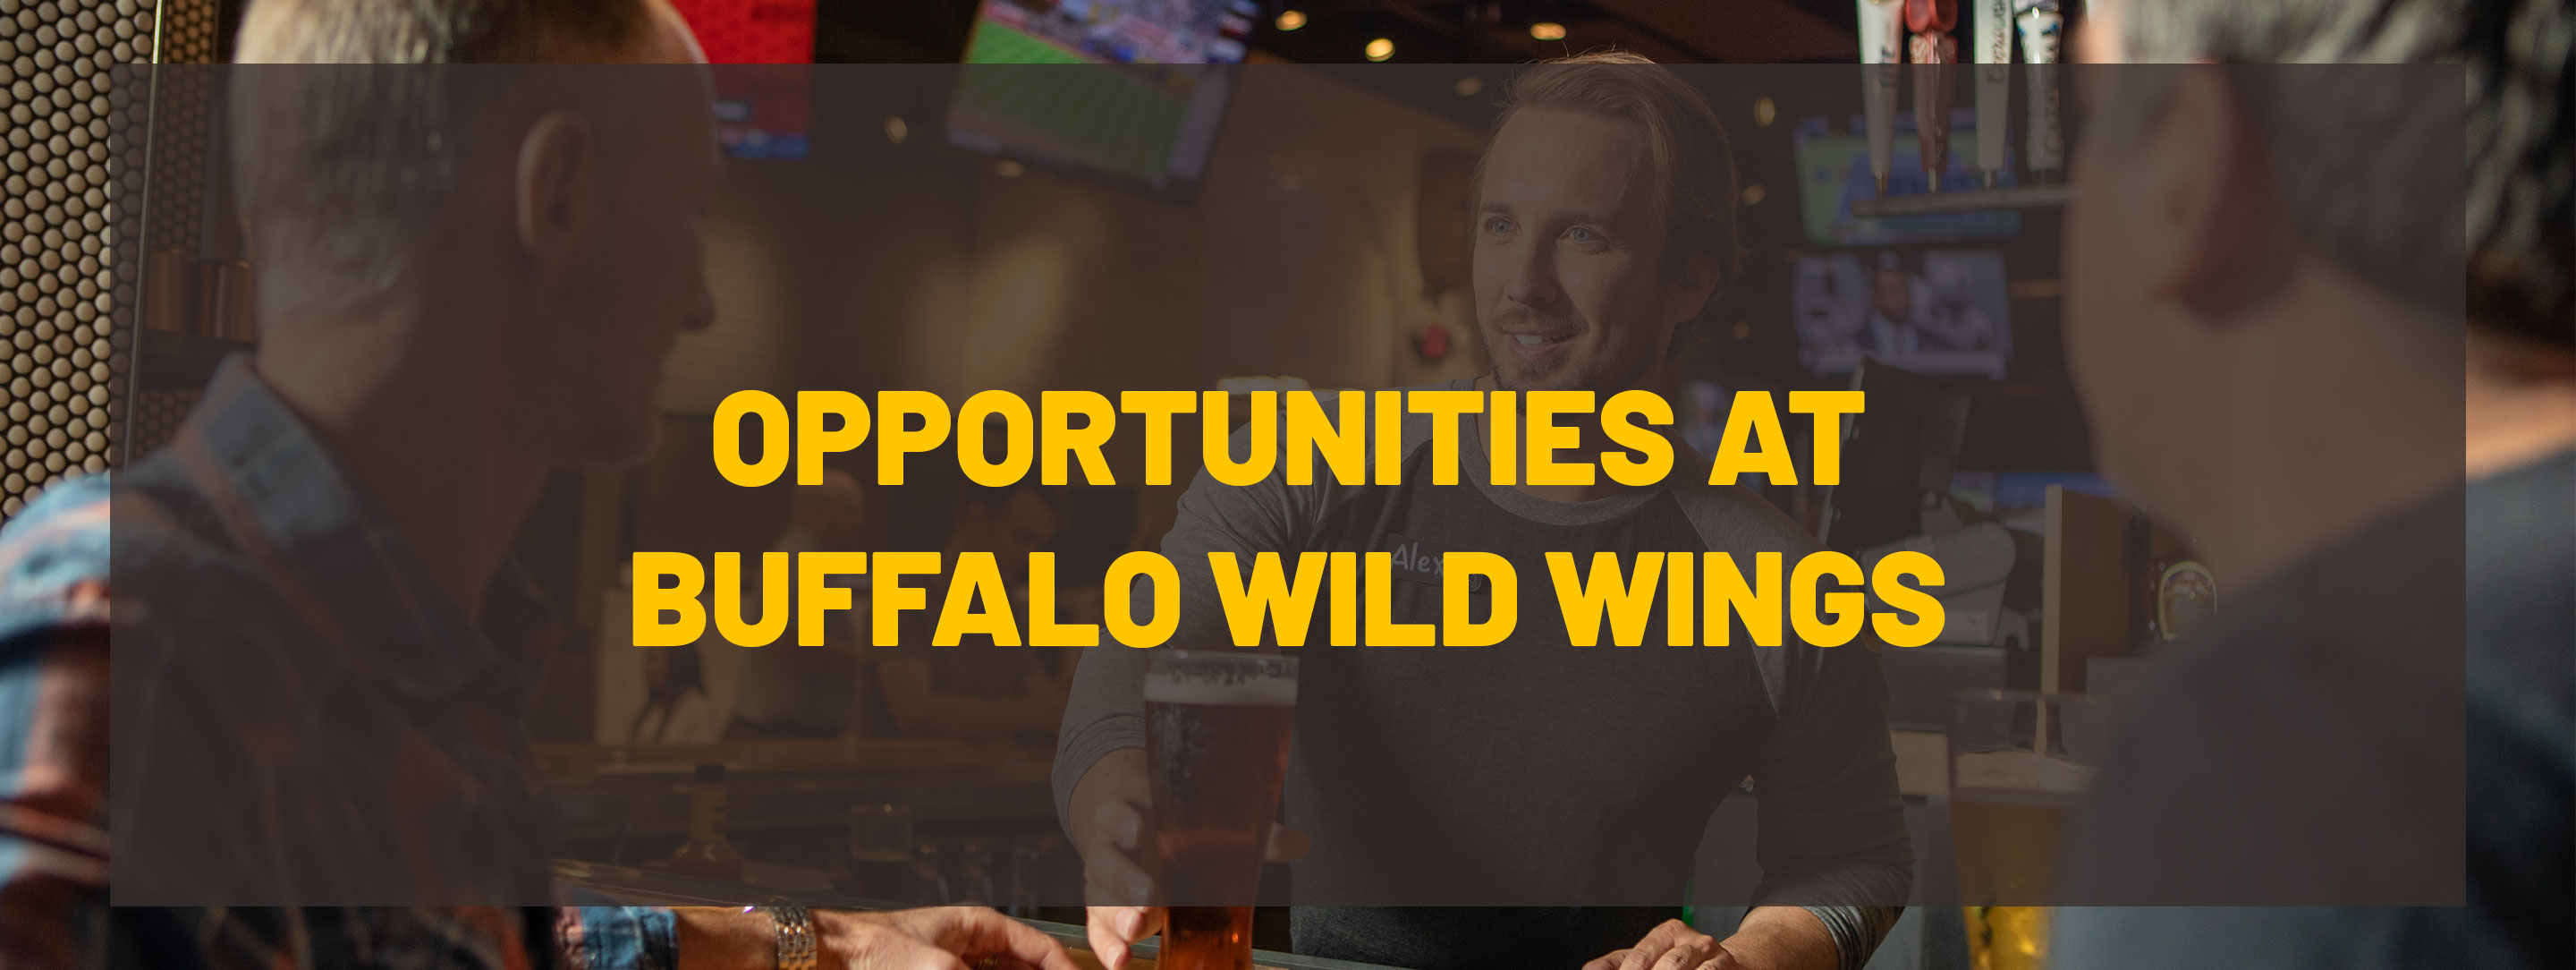 Search Results Find The Available Job Openings At Buffalo Wild Wings